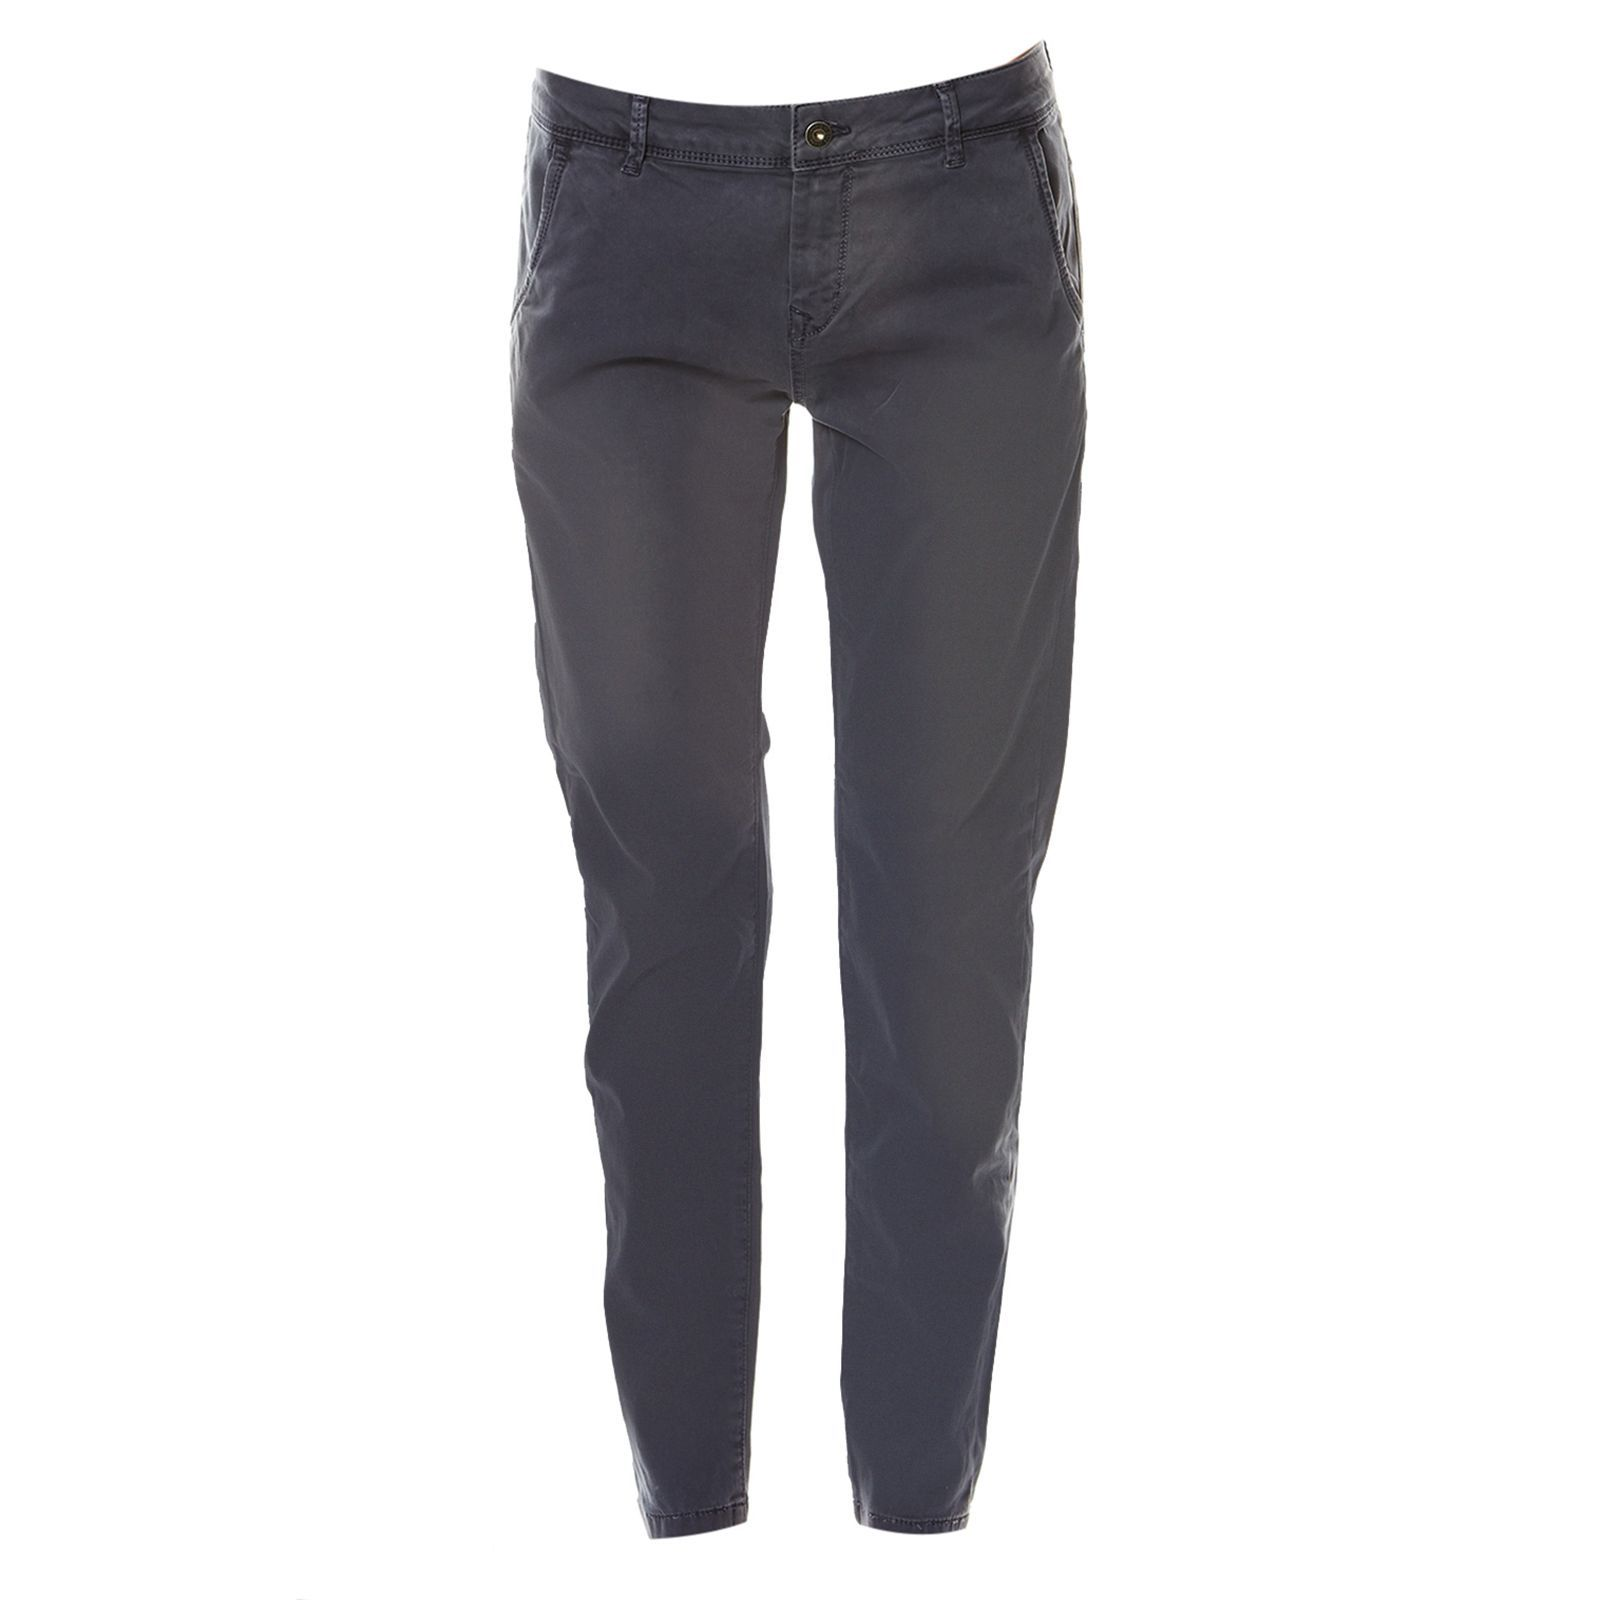 Pepe Jeans London Pantalon - bleu